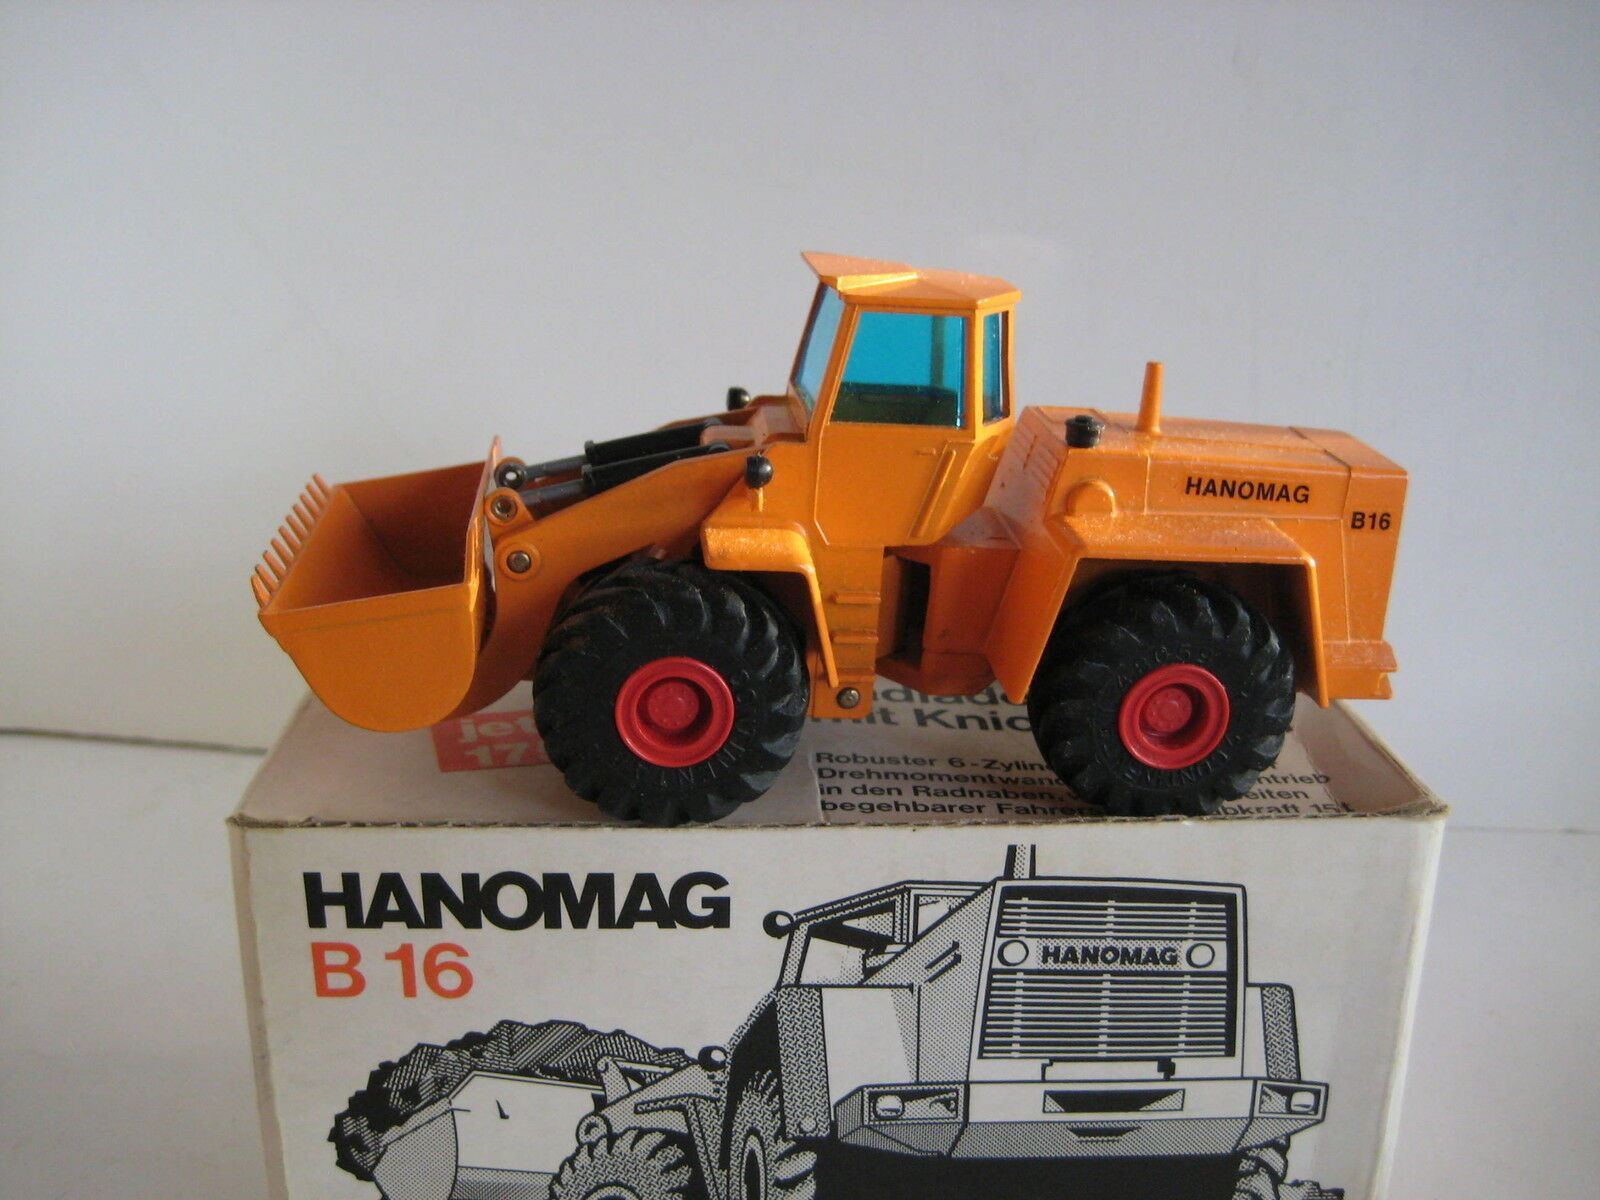 Hanomag B 16 Wheel Loader  569.5 orange cursor 1 50 OVP